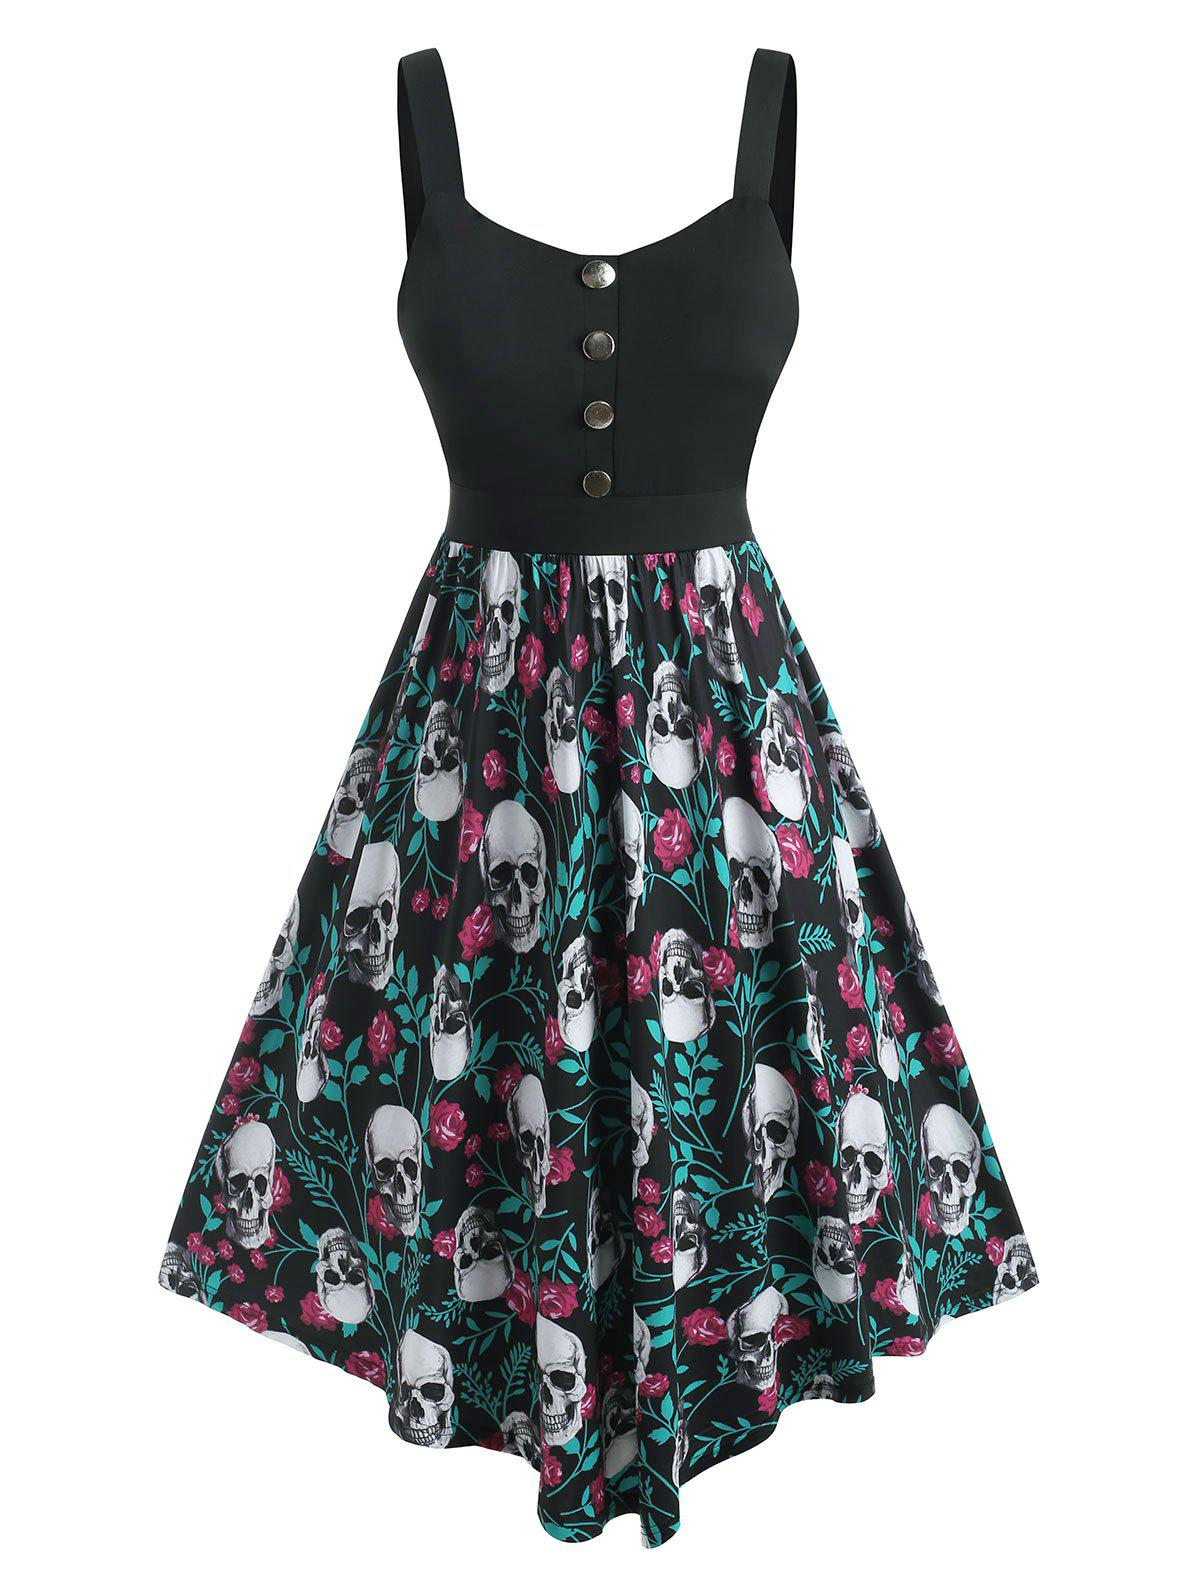 Plus Size Skull Rose Print Halloween Fit and Flare Dress - BLACK 3X